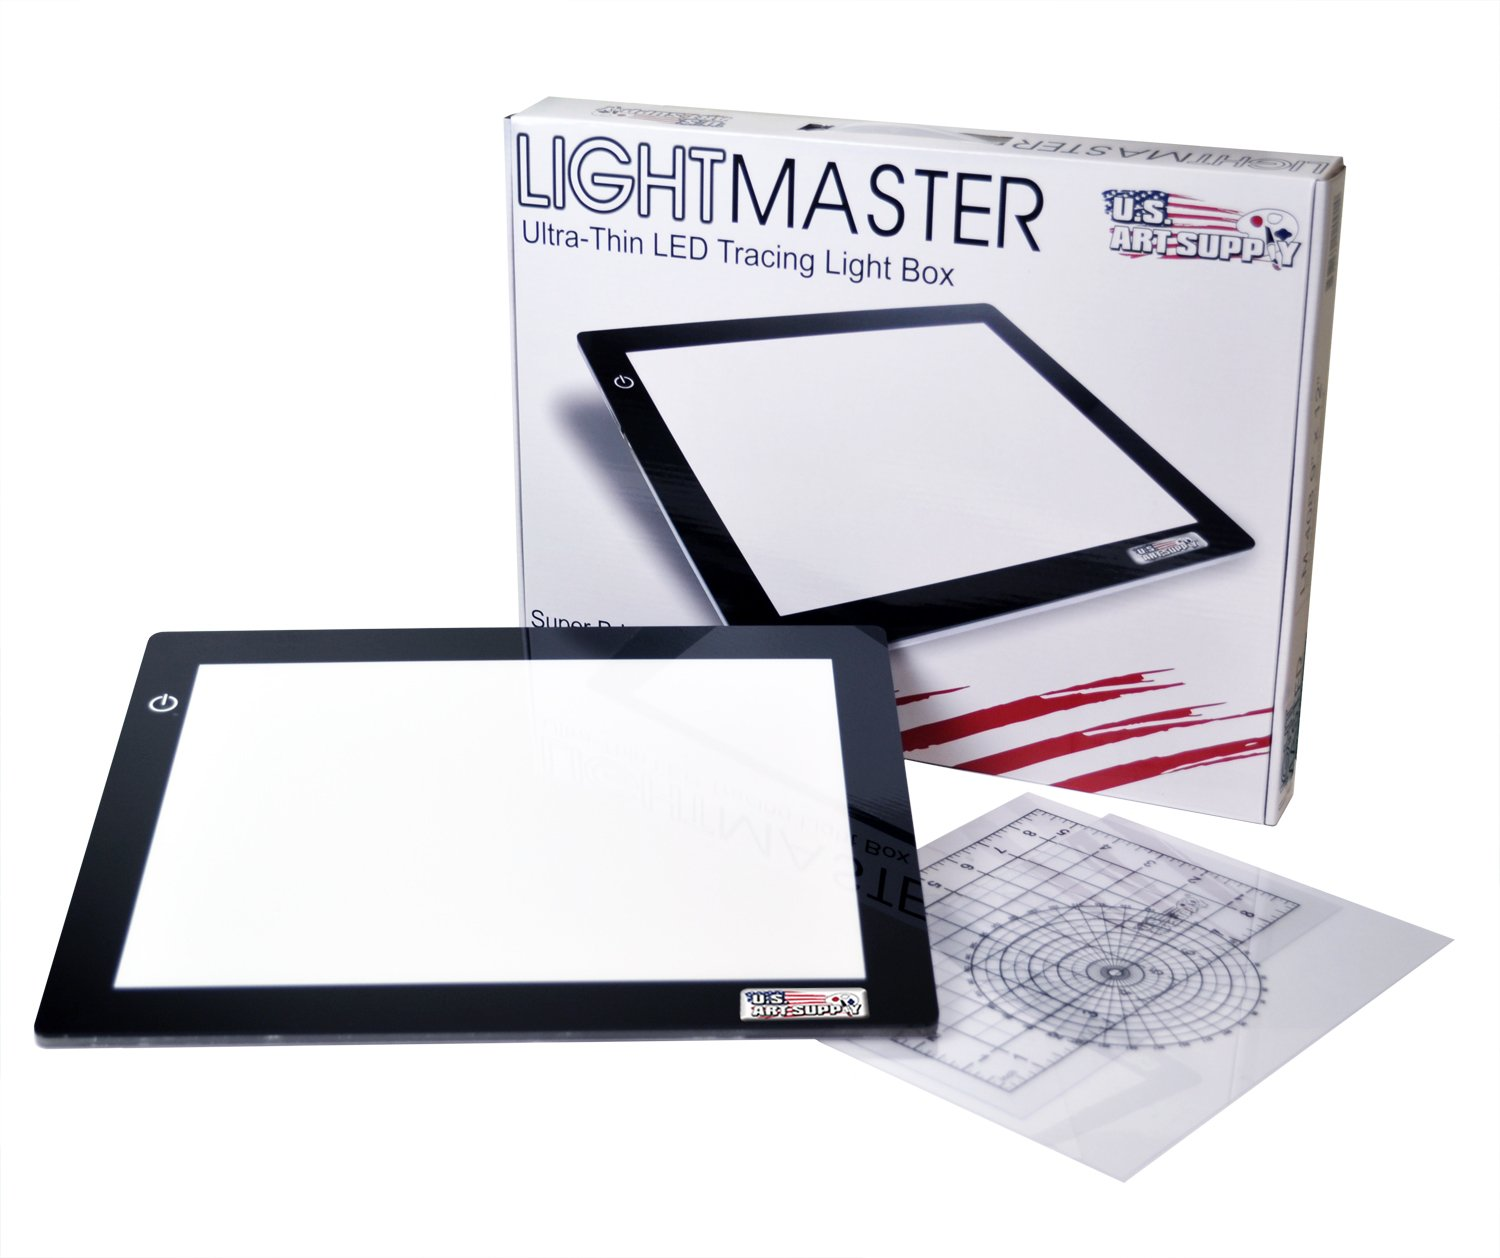 "US ART SUPPLY Lightmaster USB Powered 18.75"" Diagonal Professional Artist Size (A4) 9""x12"" LED Lightbox Board - 5-Volt Light Bright Ultra-Thin 3/8"" Profile L.E.D. Light Box Pad with 110V AC Power Adapter, USB Adapter to Power From any USB Port, Computer or Wall Plug. Now Includes for FREE: 1"